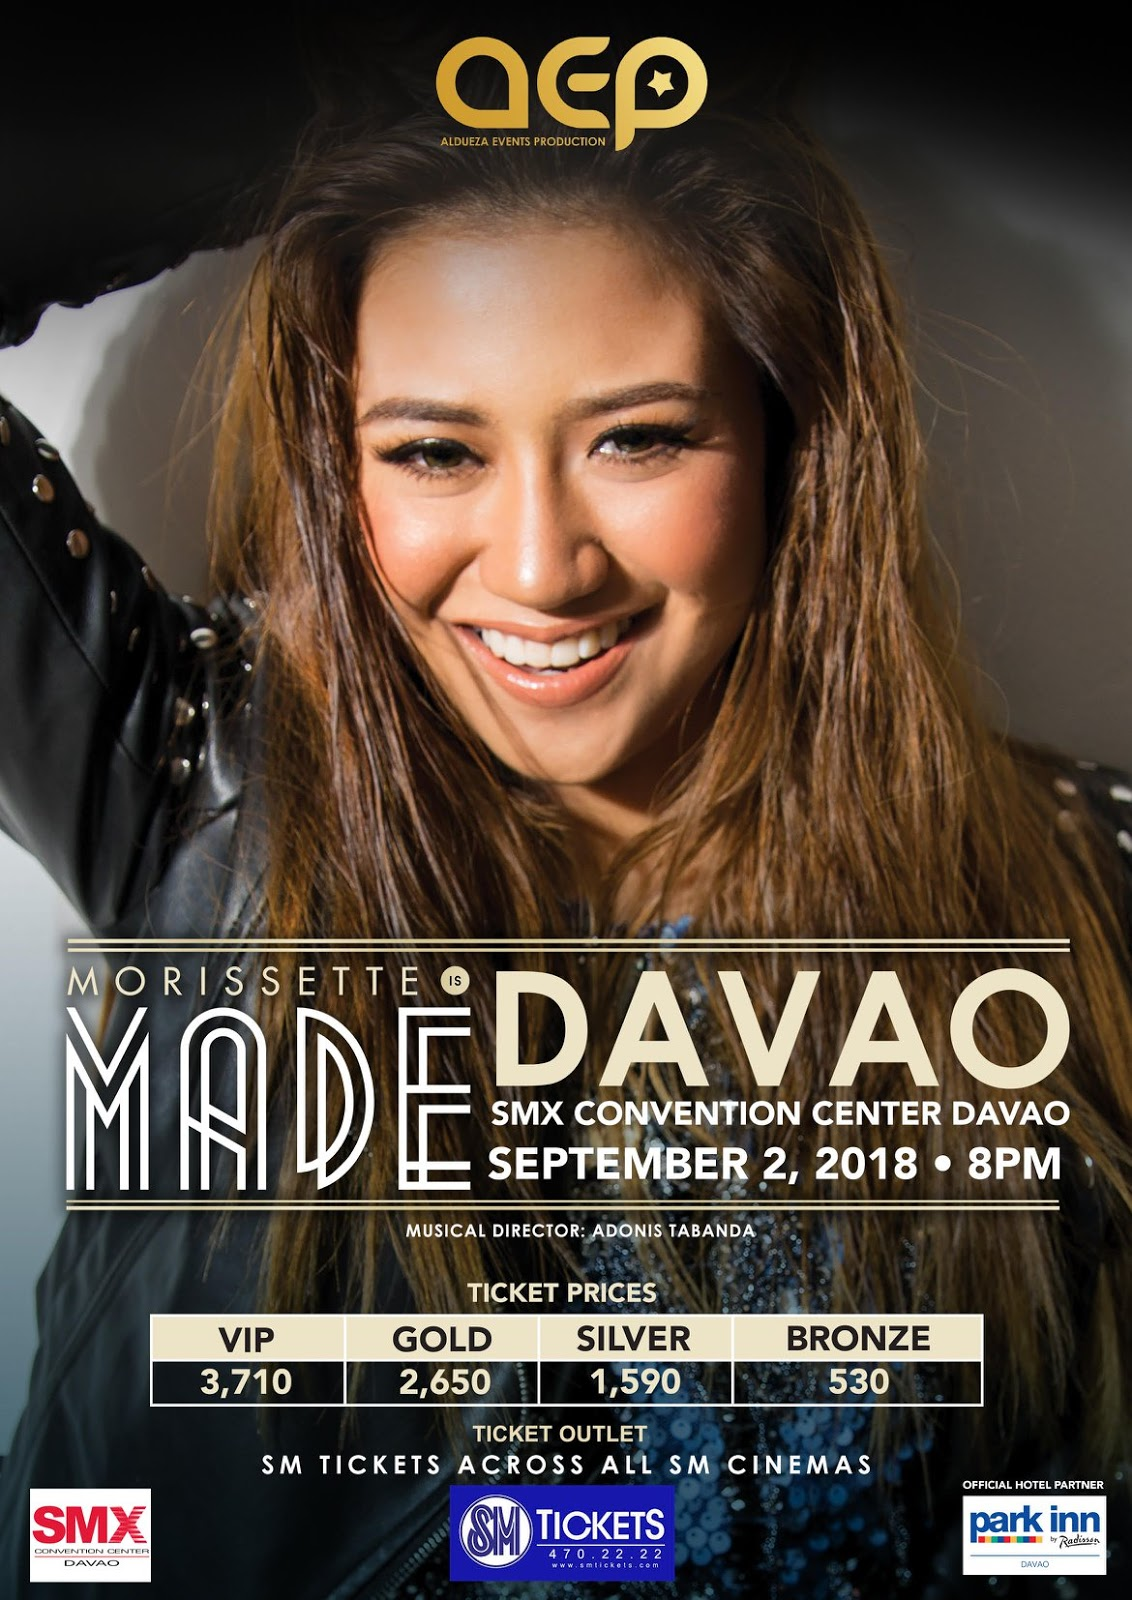 Morissette is MADE - Davao